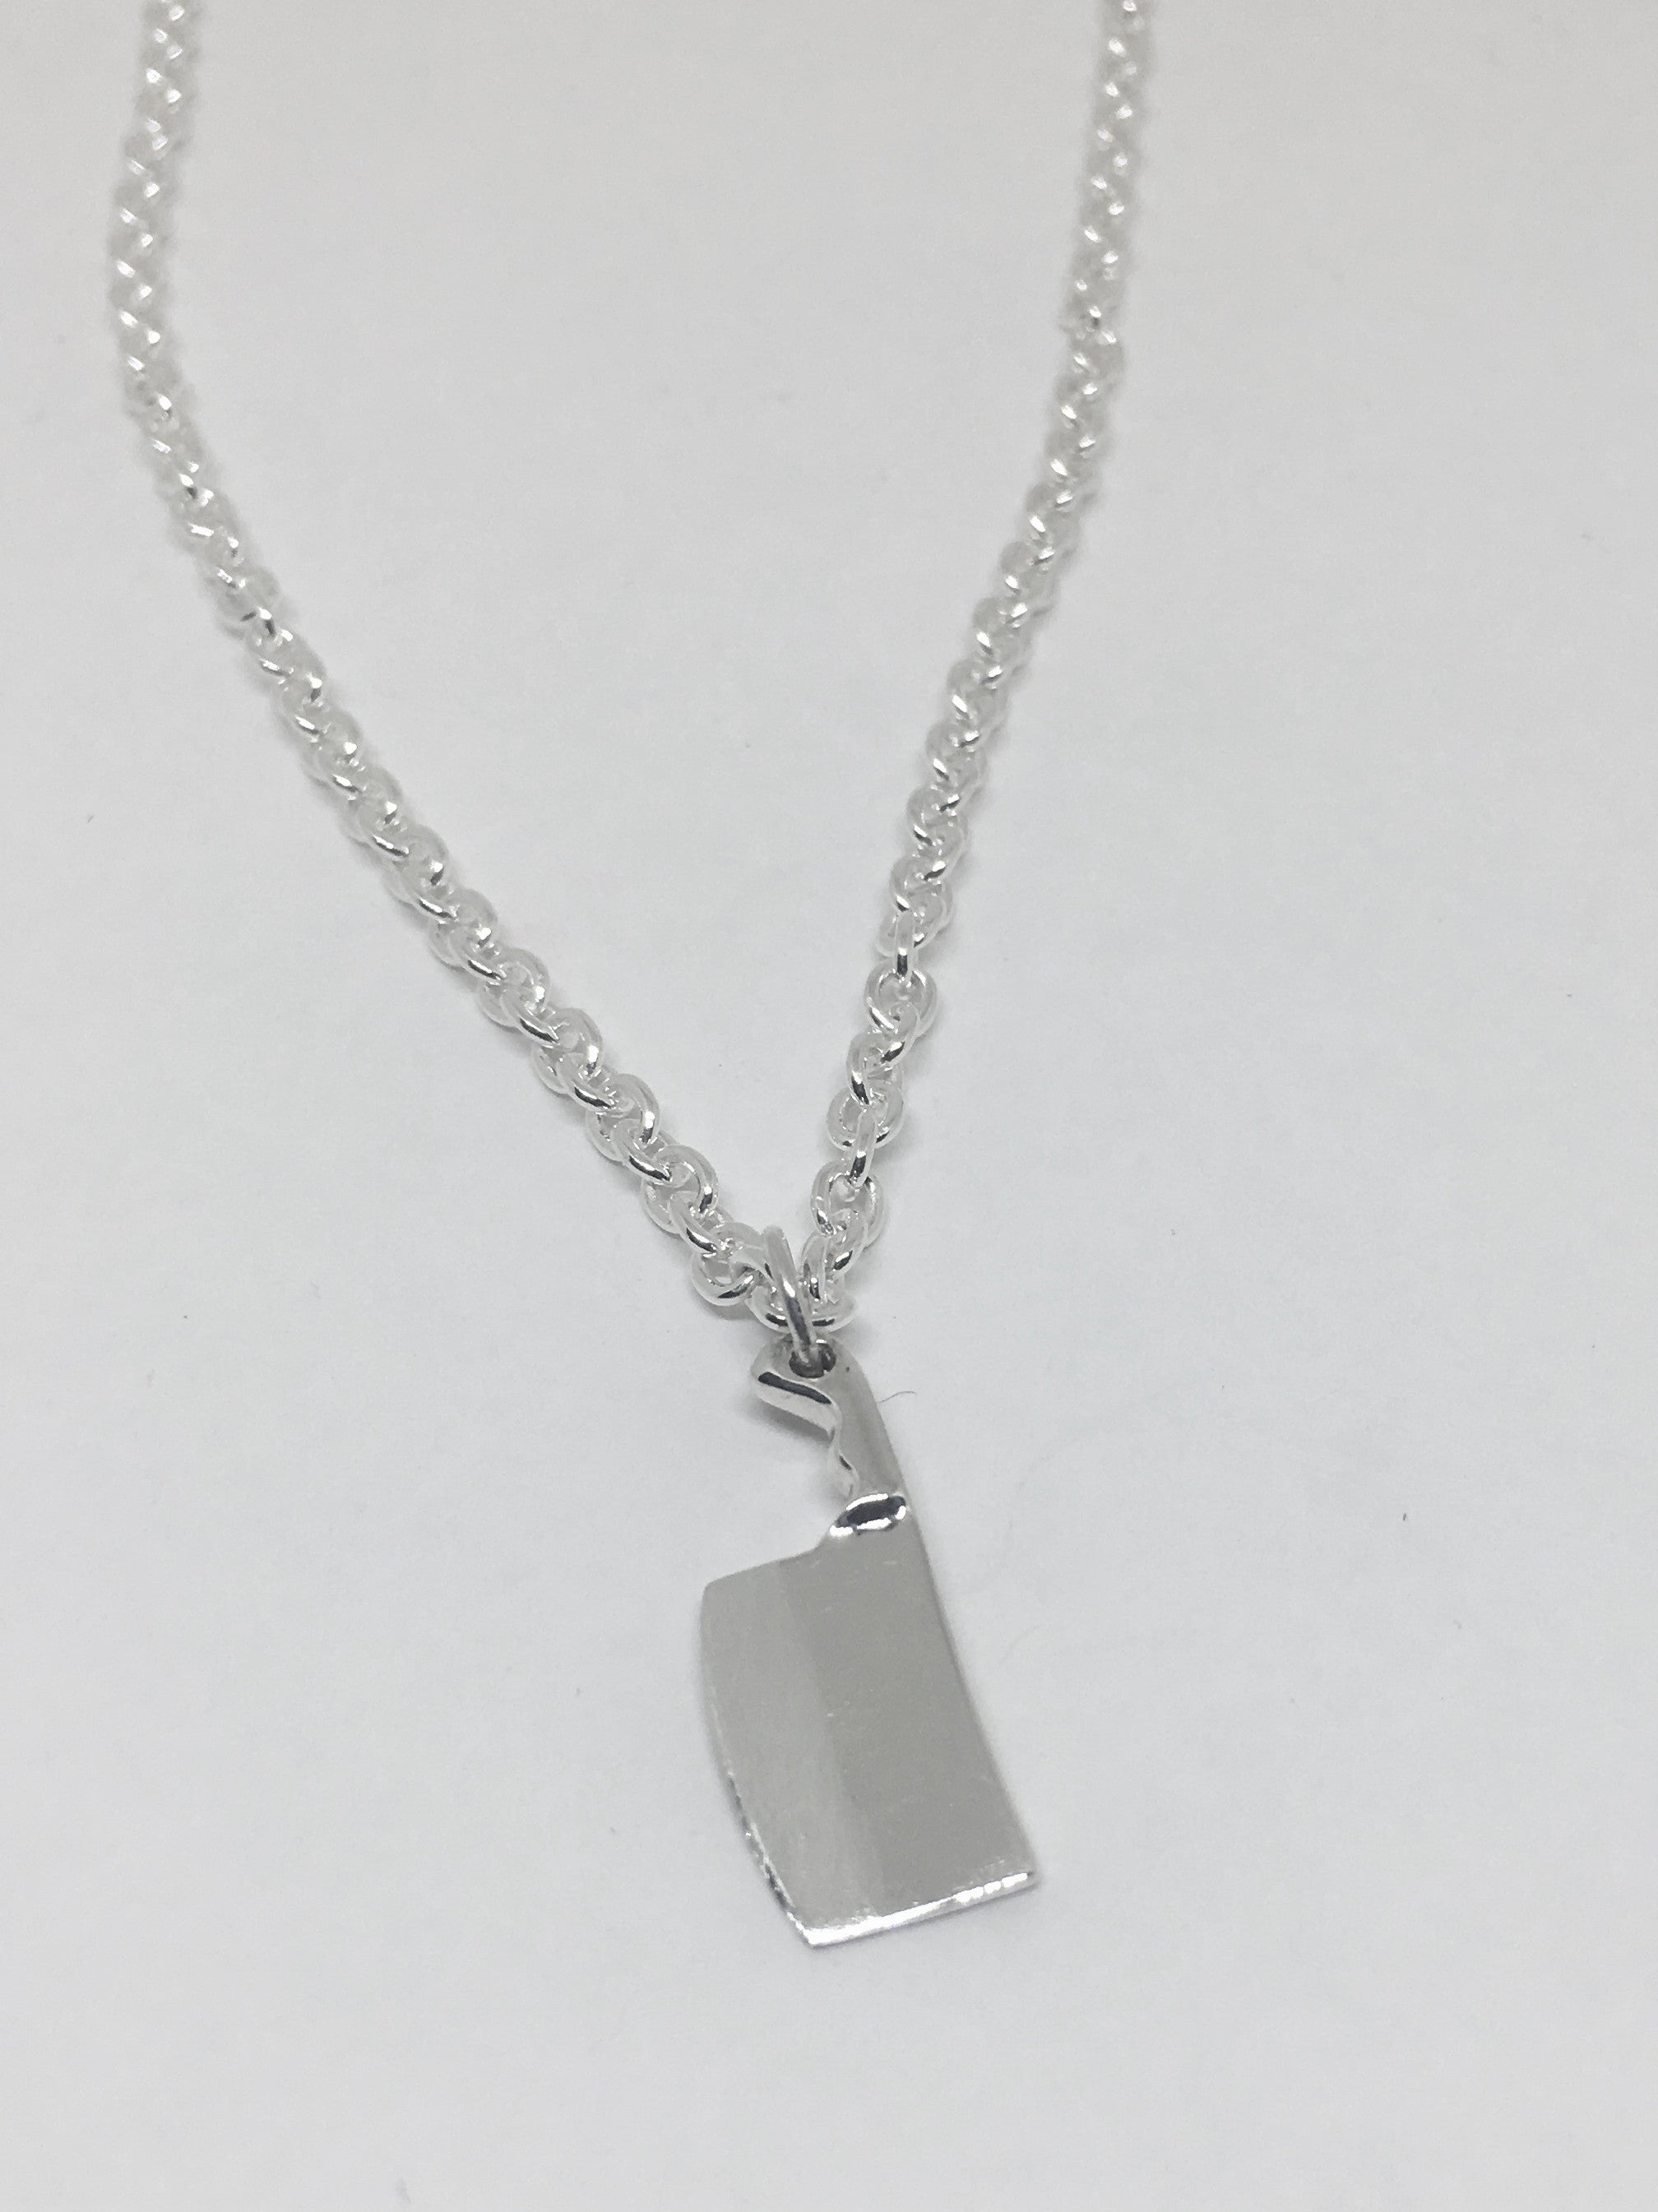 Man's Chef Cleaver Knife Pendant Necklace in Sterling Silver